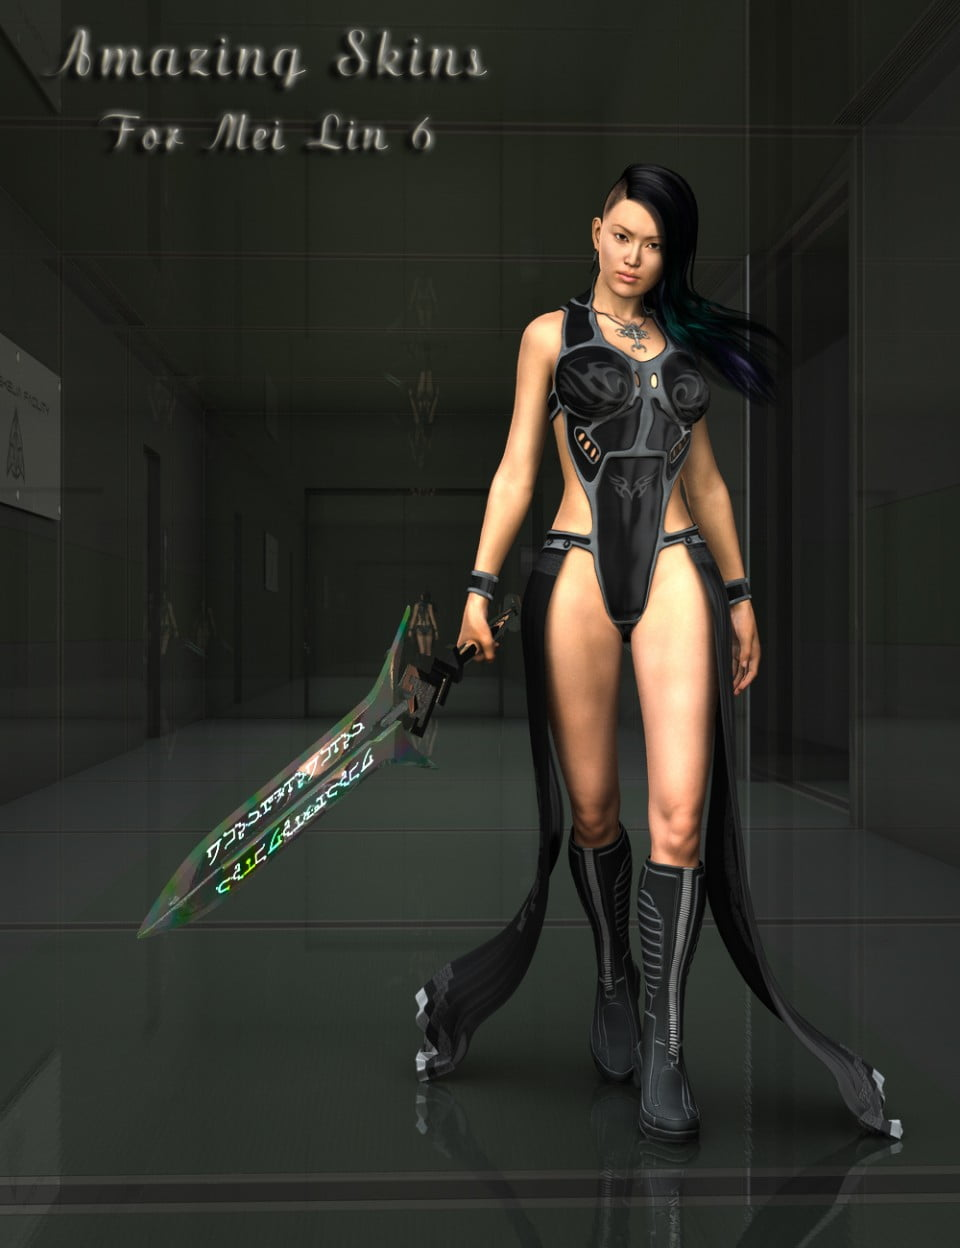 Amazing Skins For Mei Lin 6